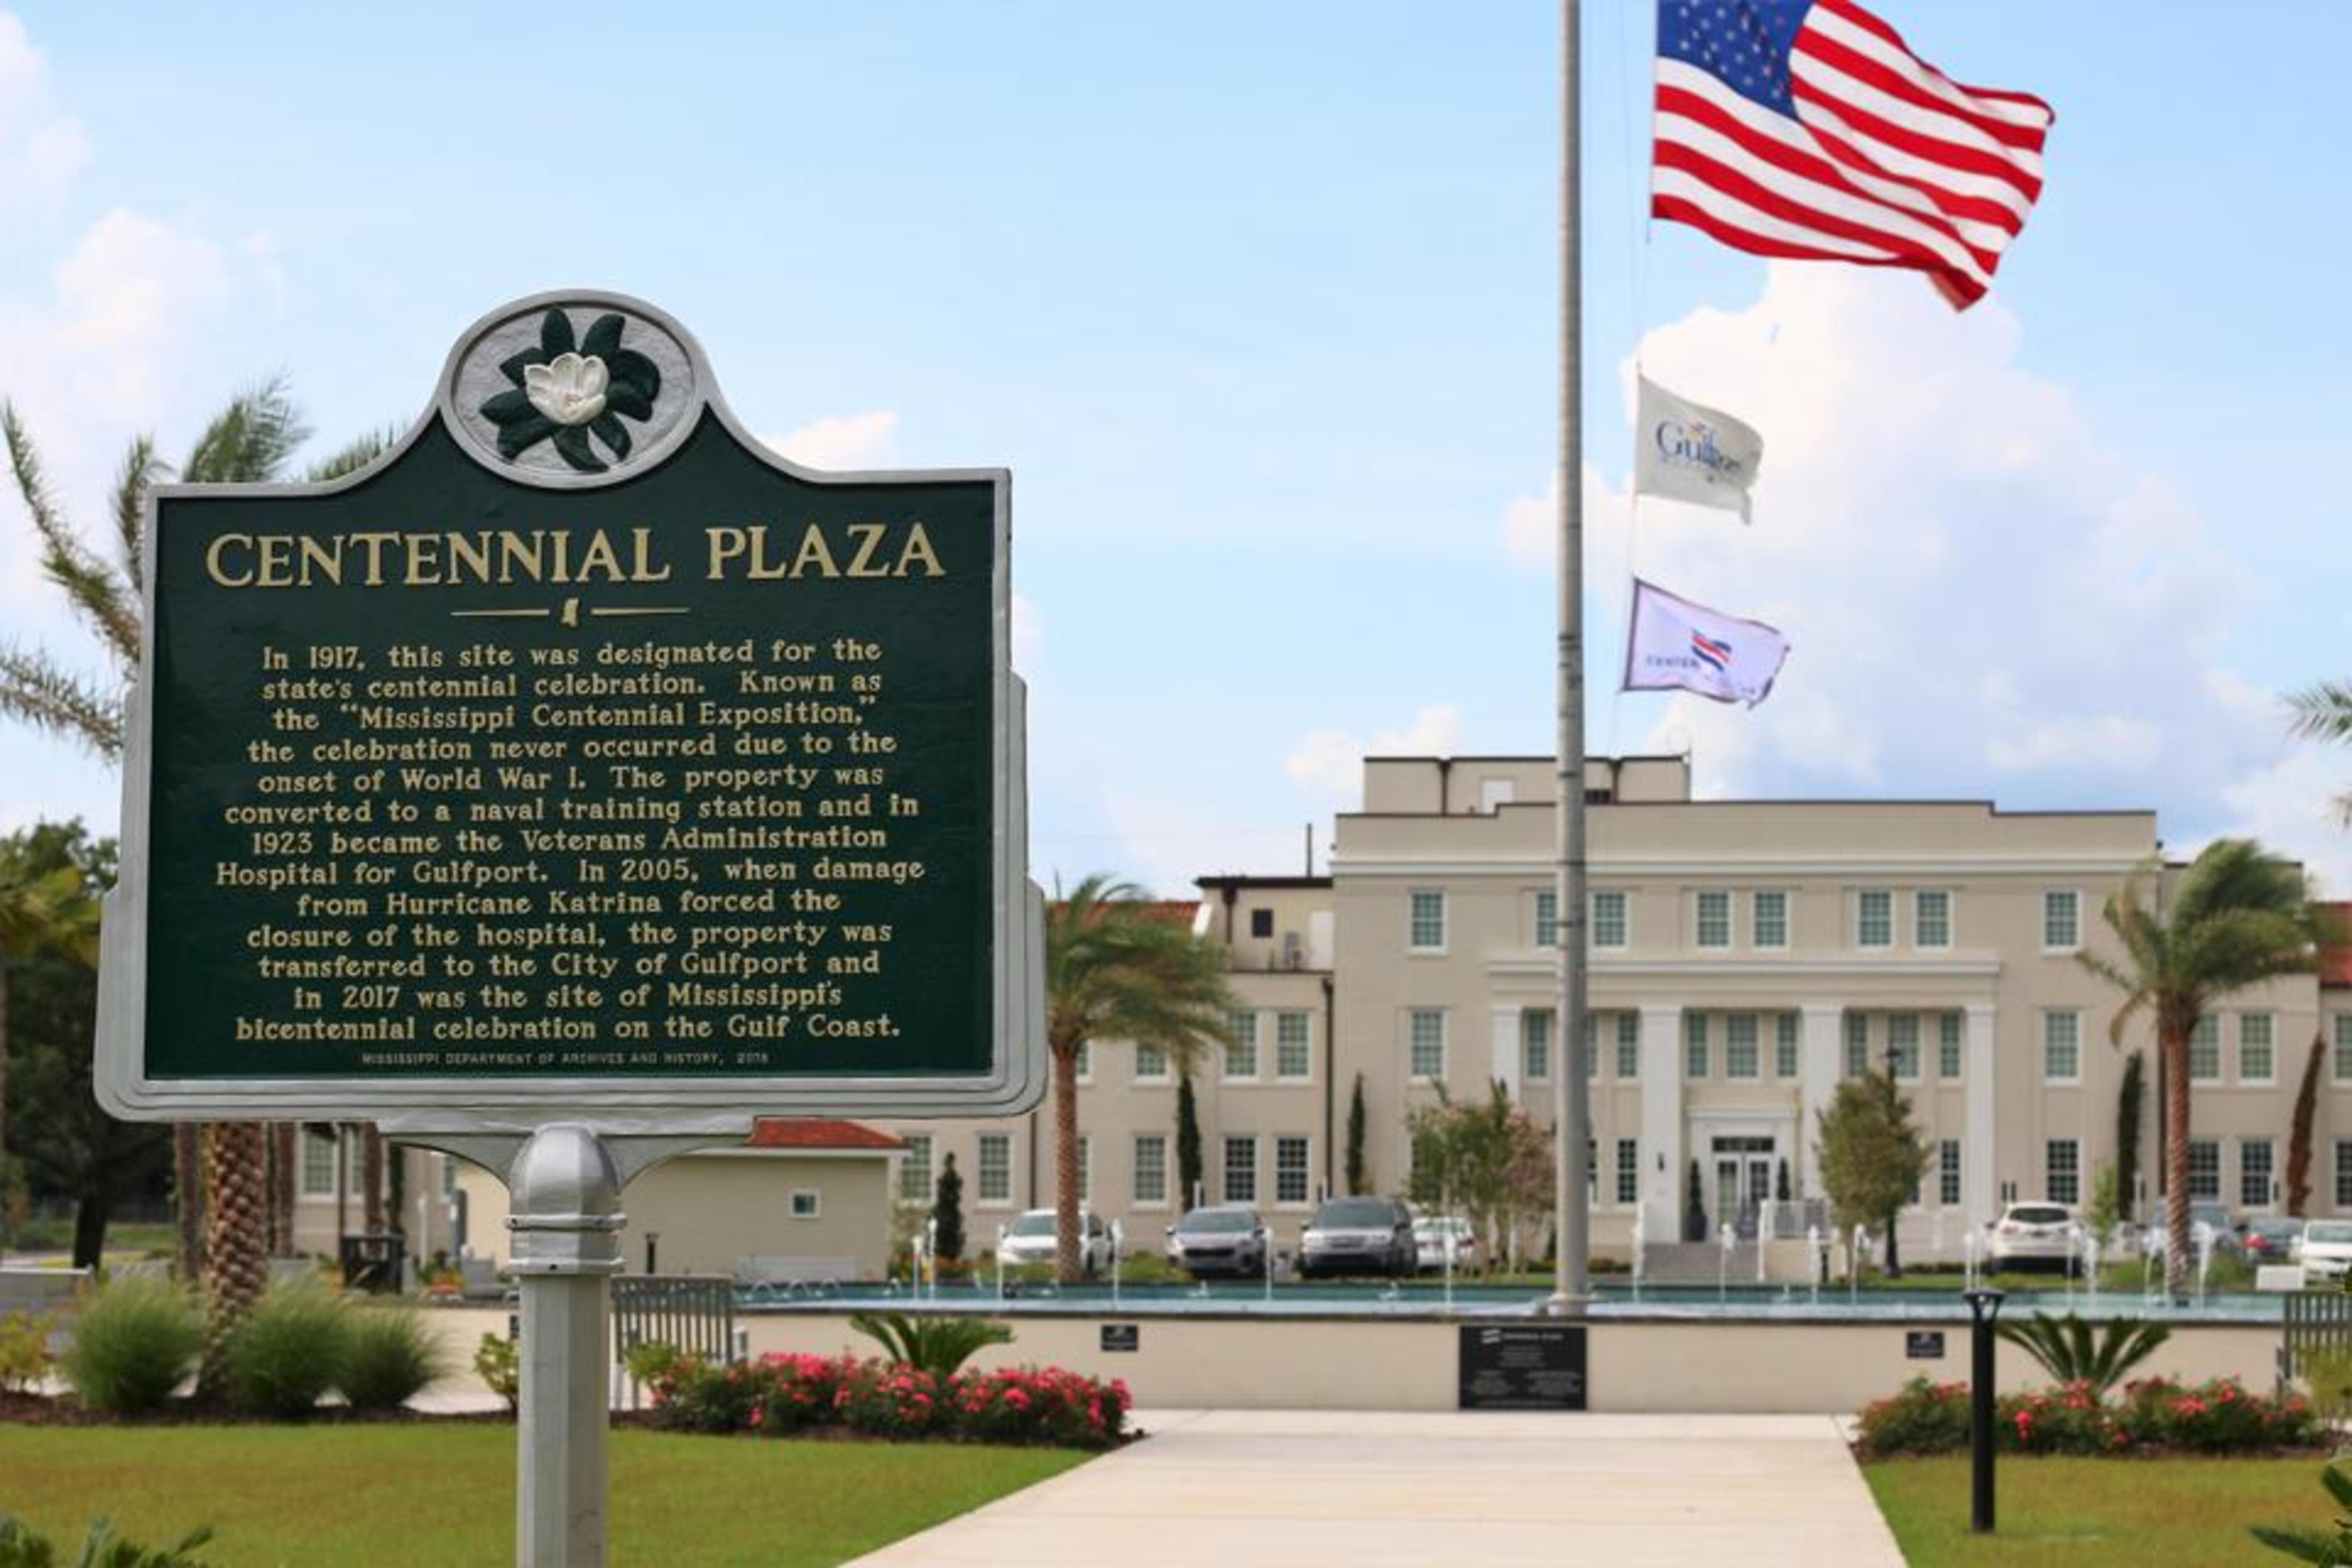 Mississippi Historical Marker at Grand Centennial Hotel in Gulfport